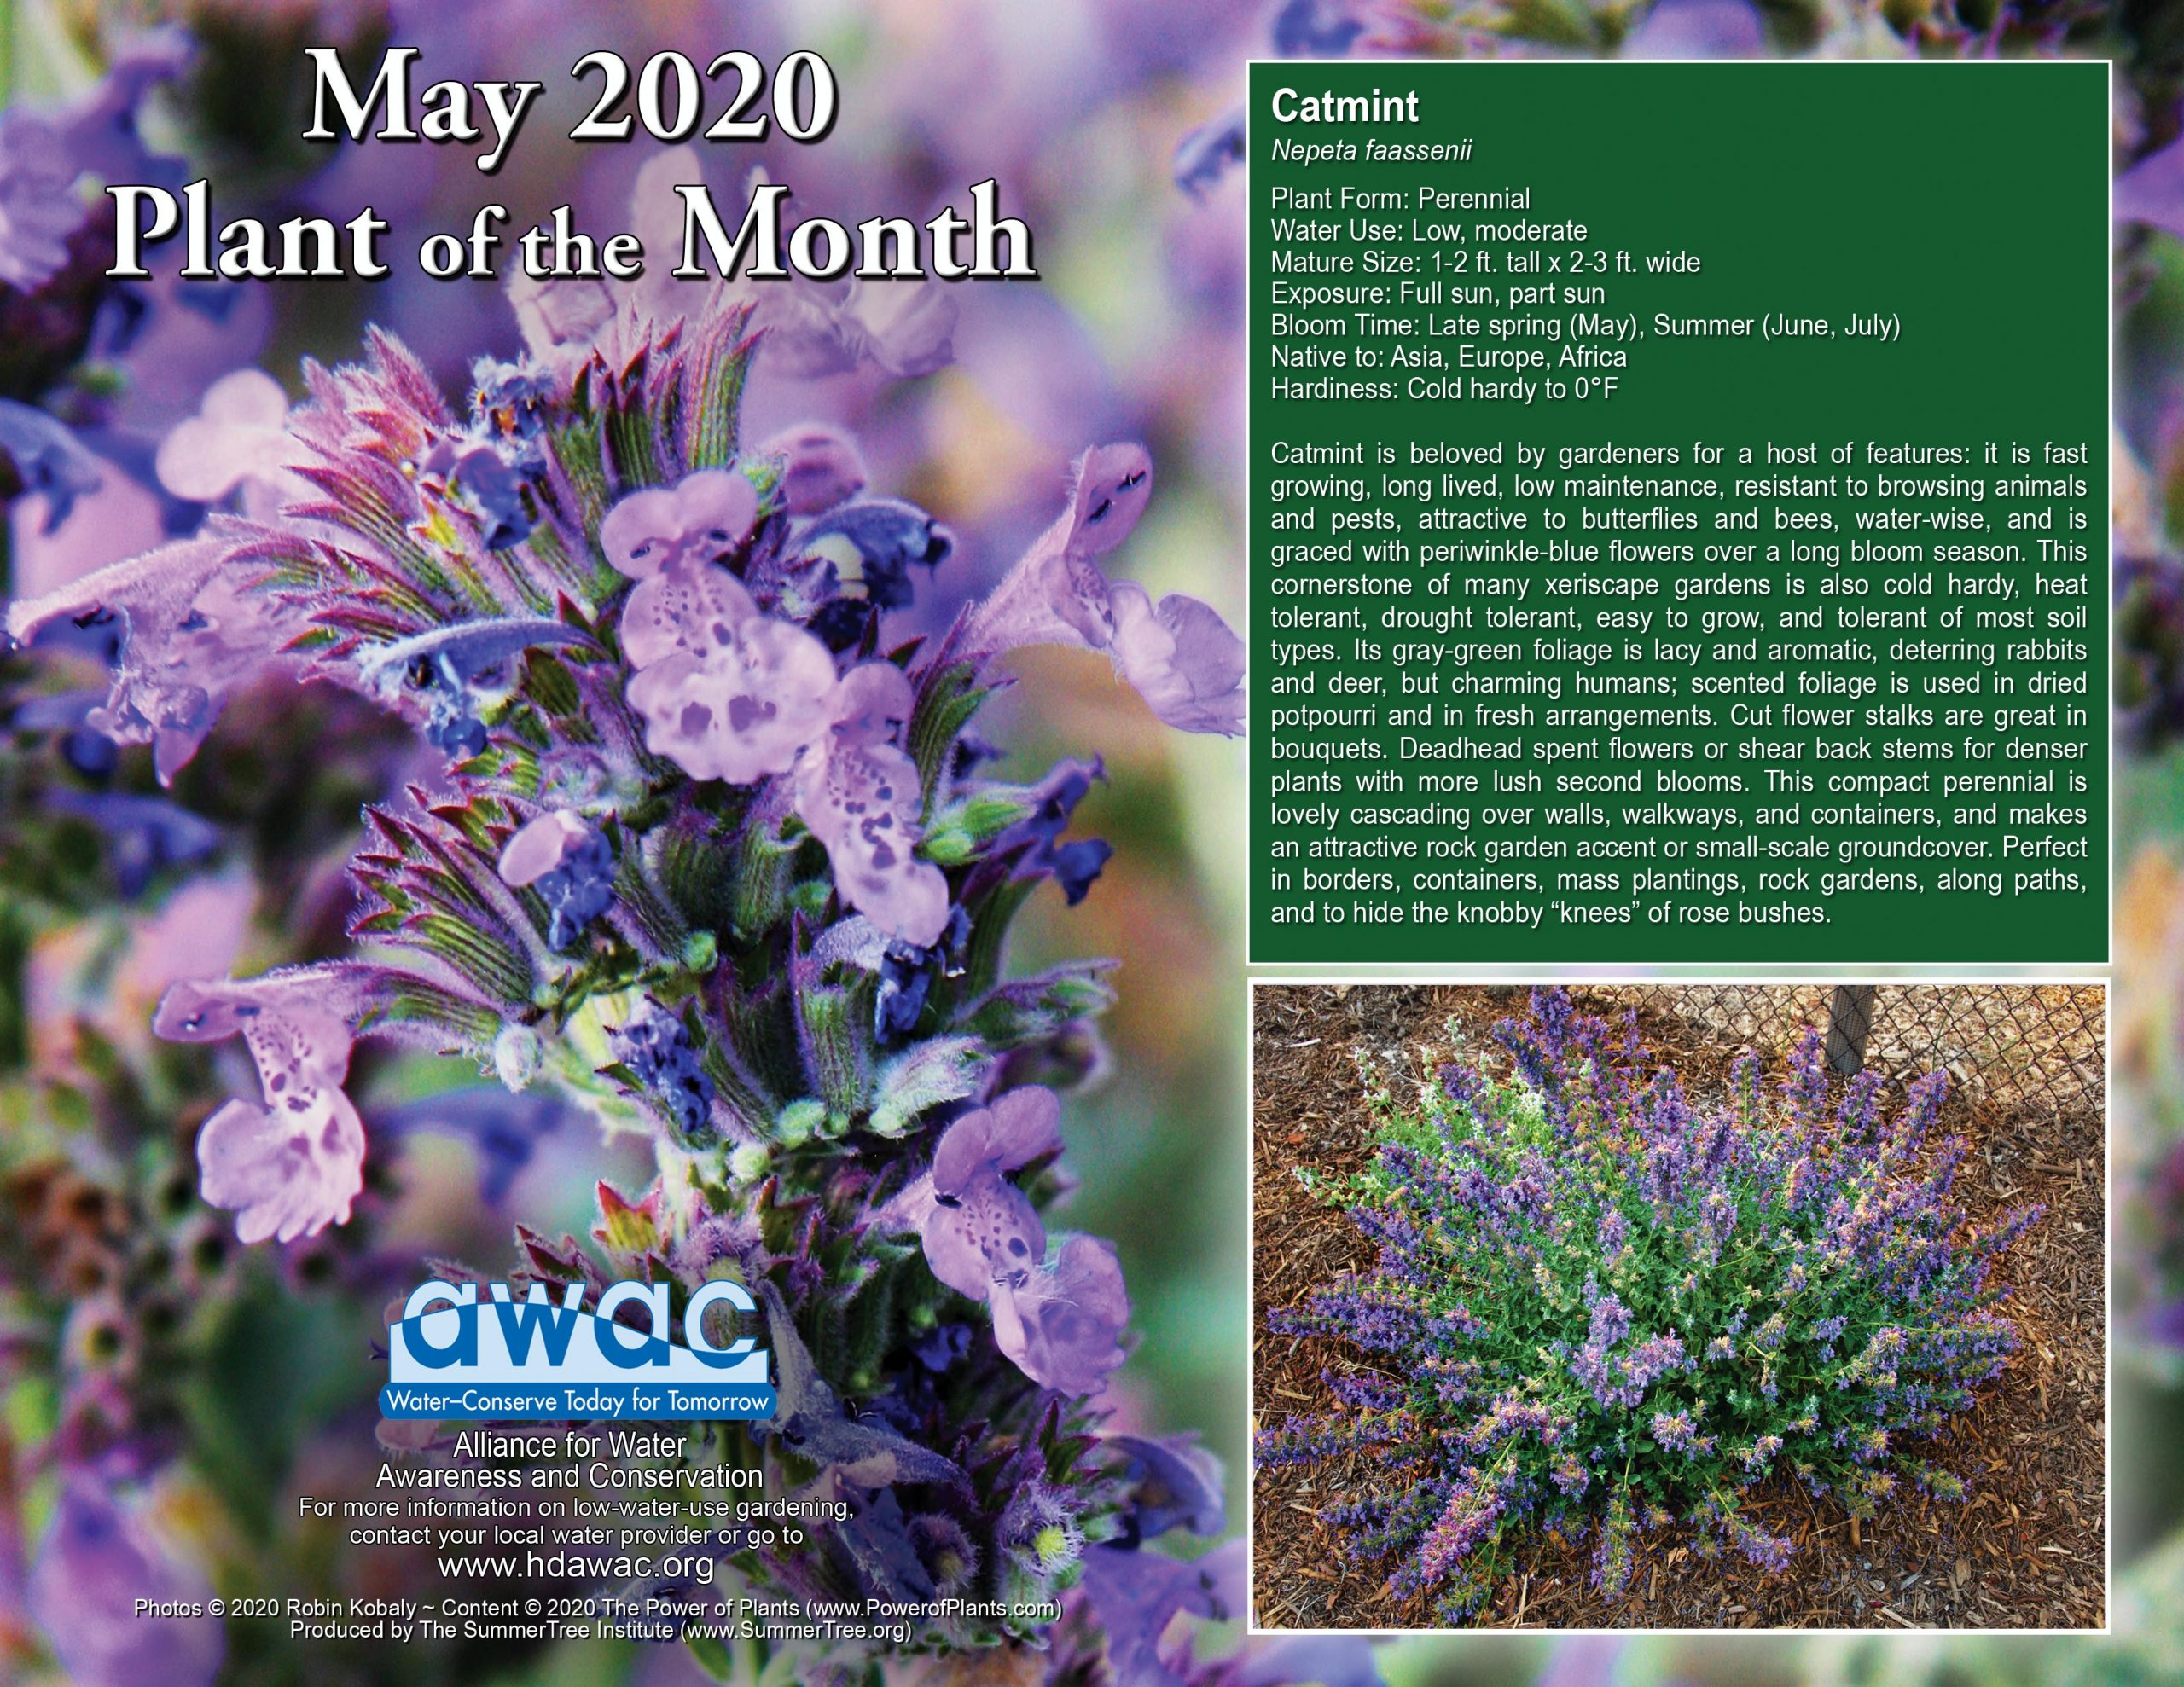 May 2020 Plant of the Month